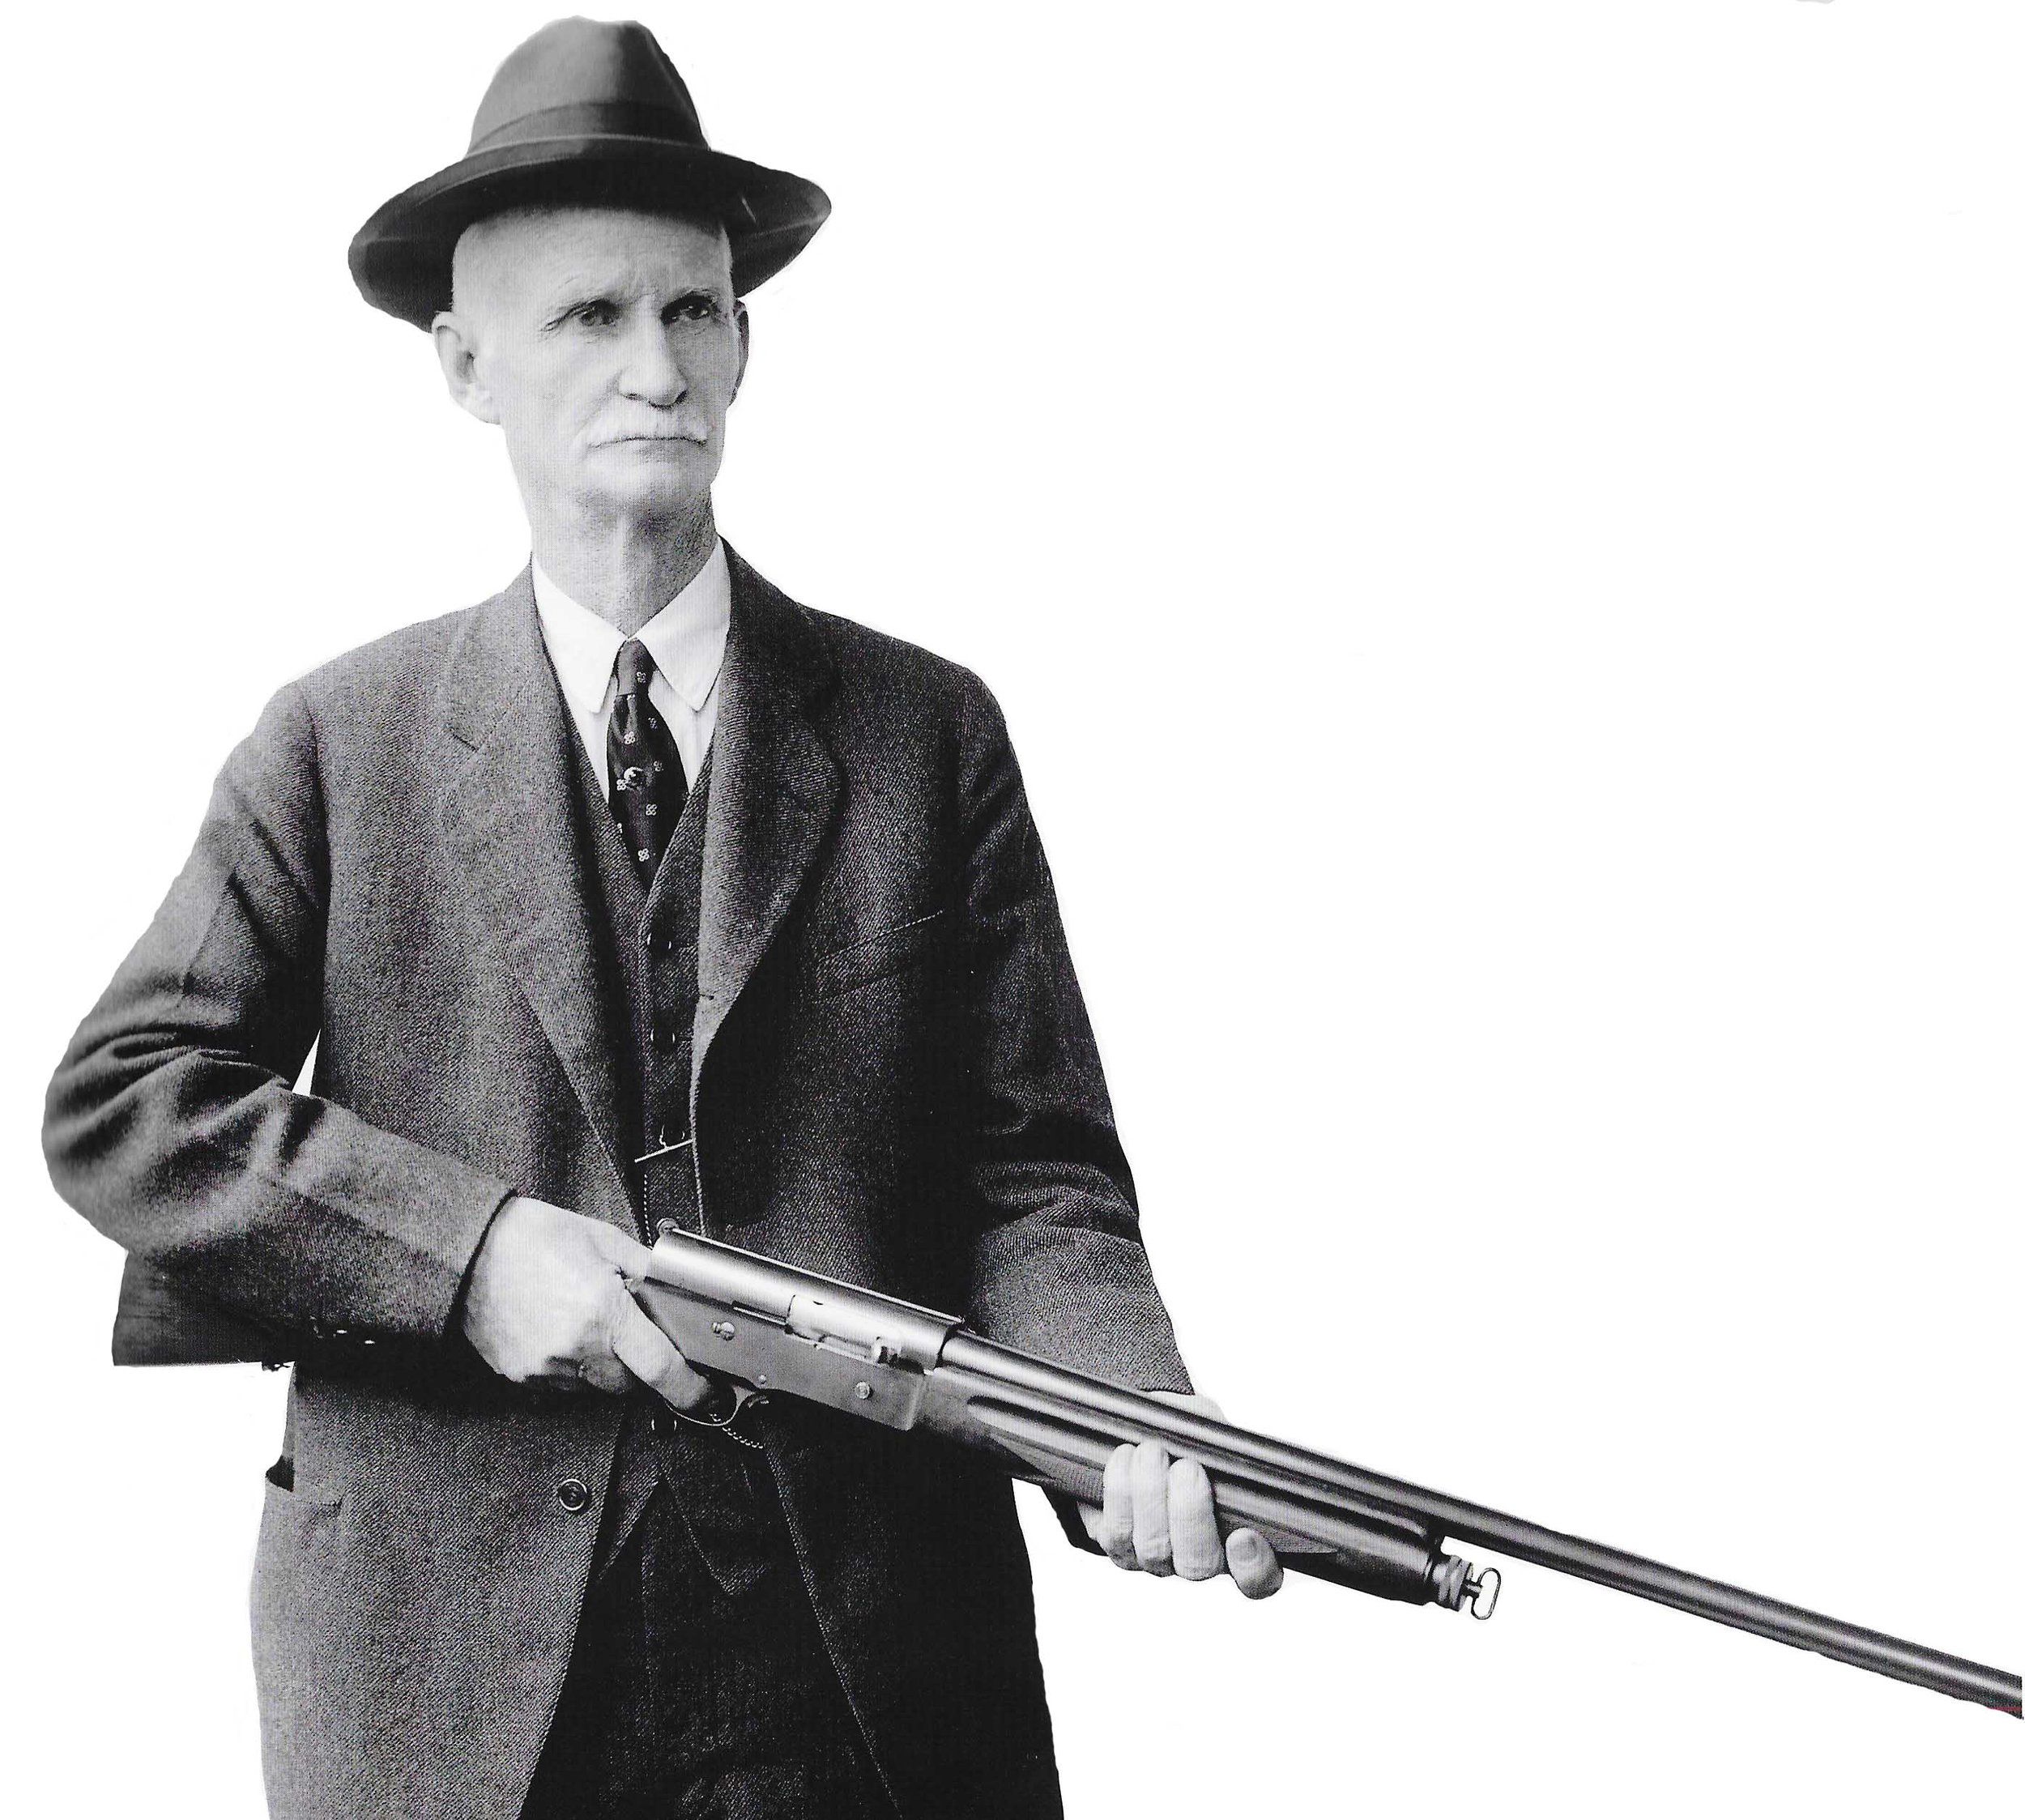 John Moses Browning, the Patron Saint of Firearm Design. Do not do injustice to this man's memory.